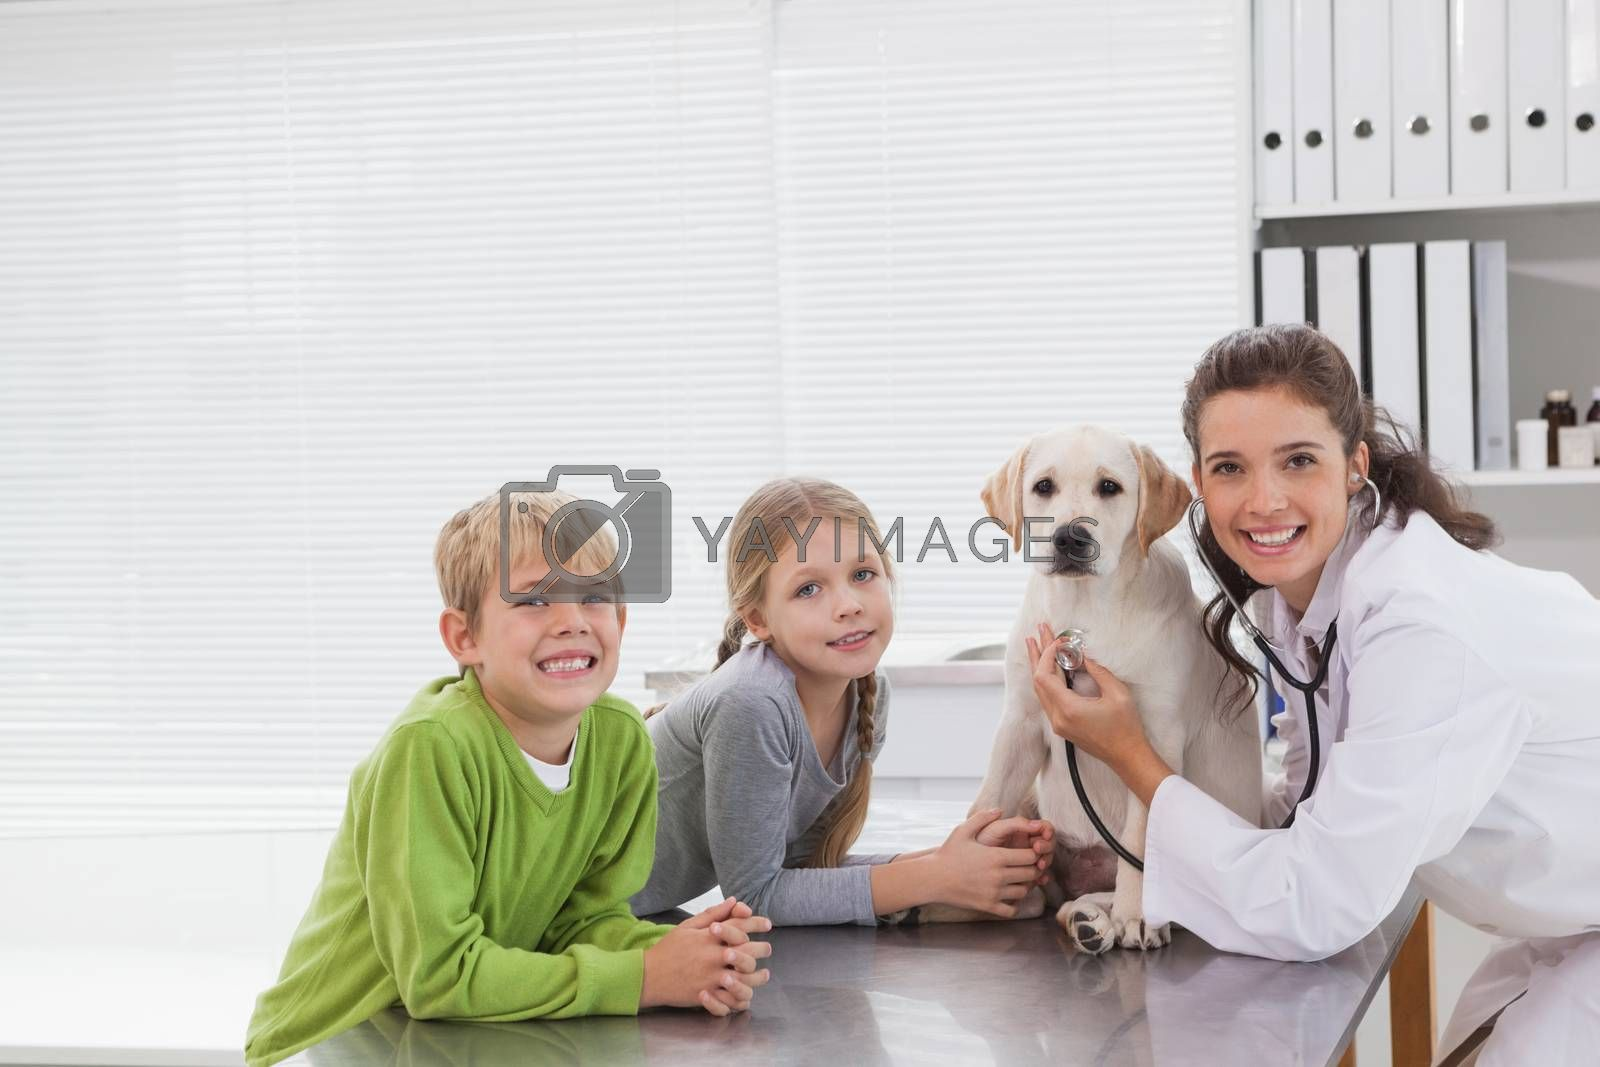 Smiling vet examining a dog with its owners in medical office